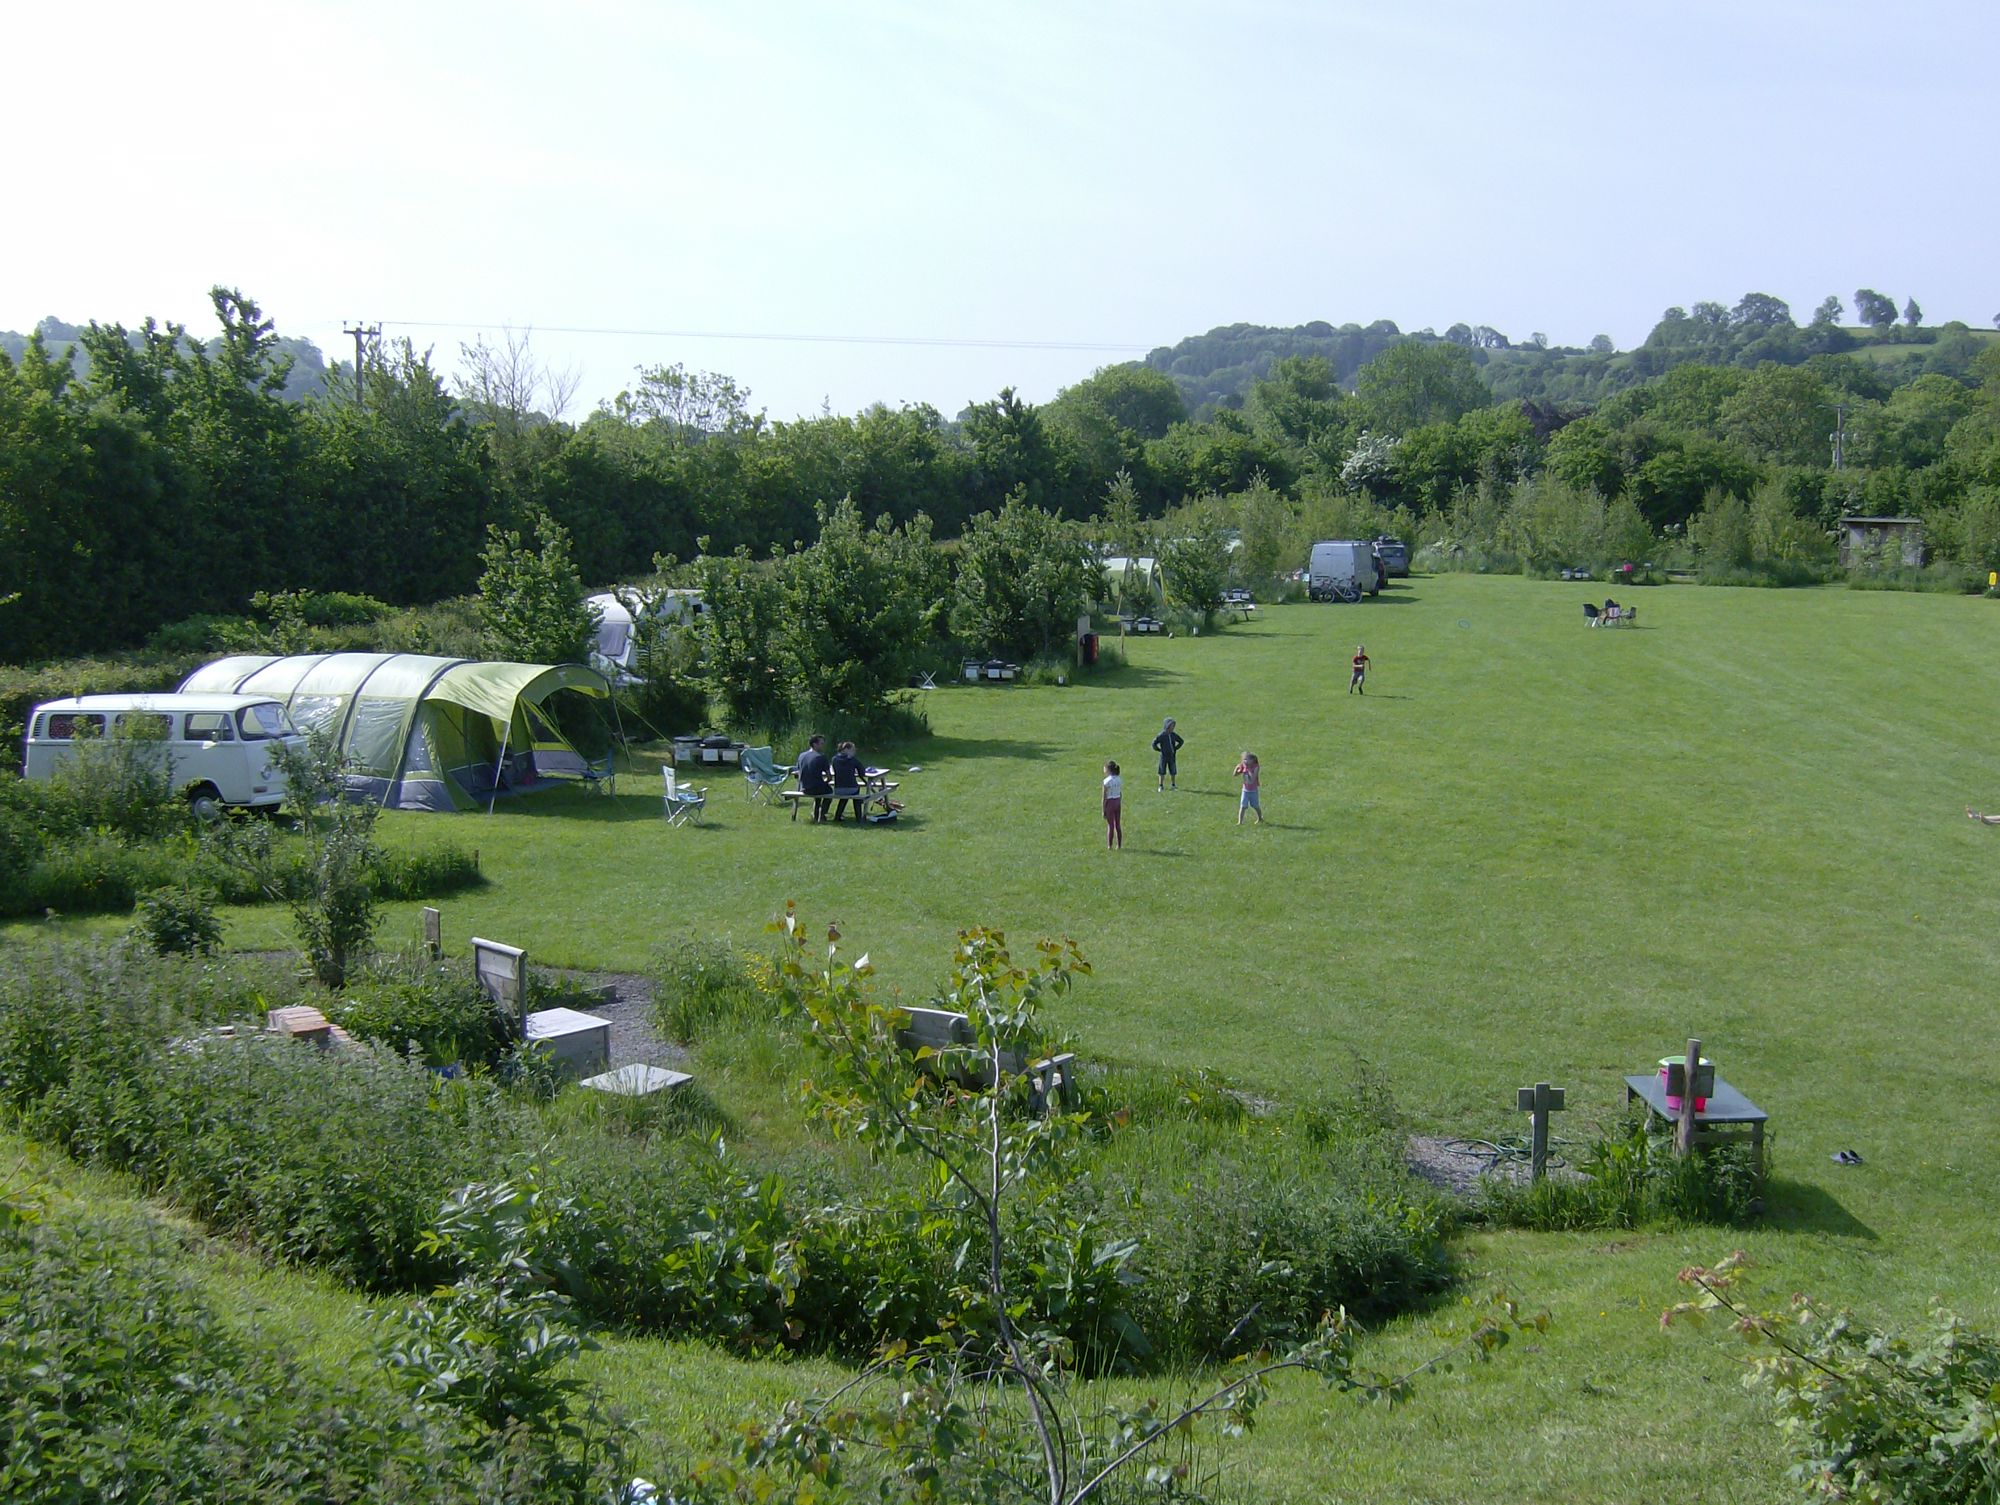 Campsites in Somerset - campsites uk england somerset at Cool Camping